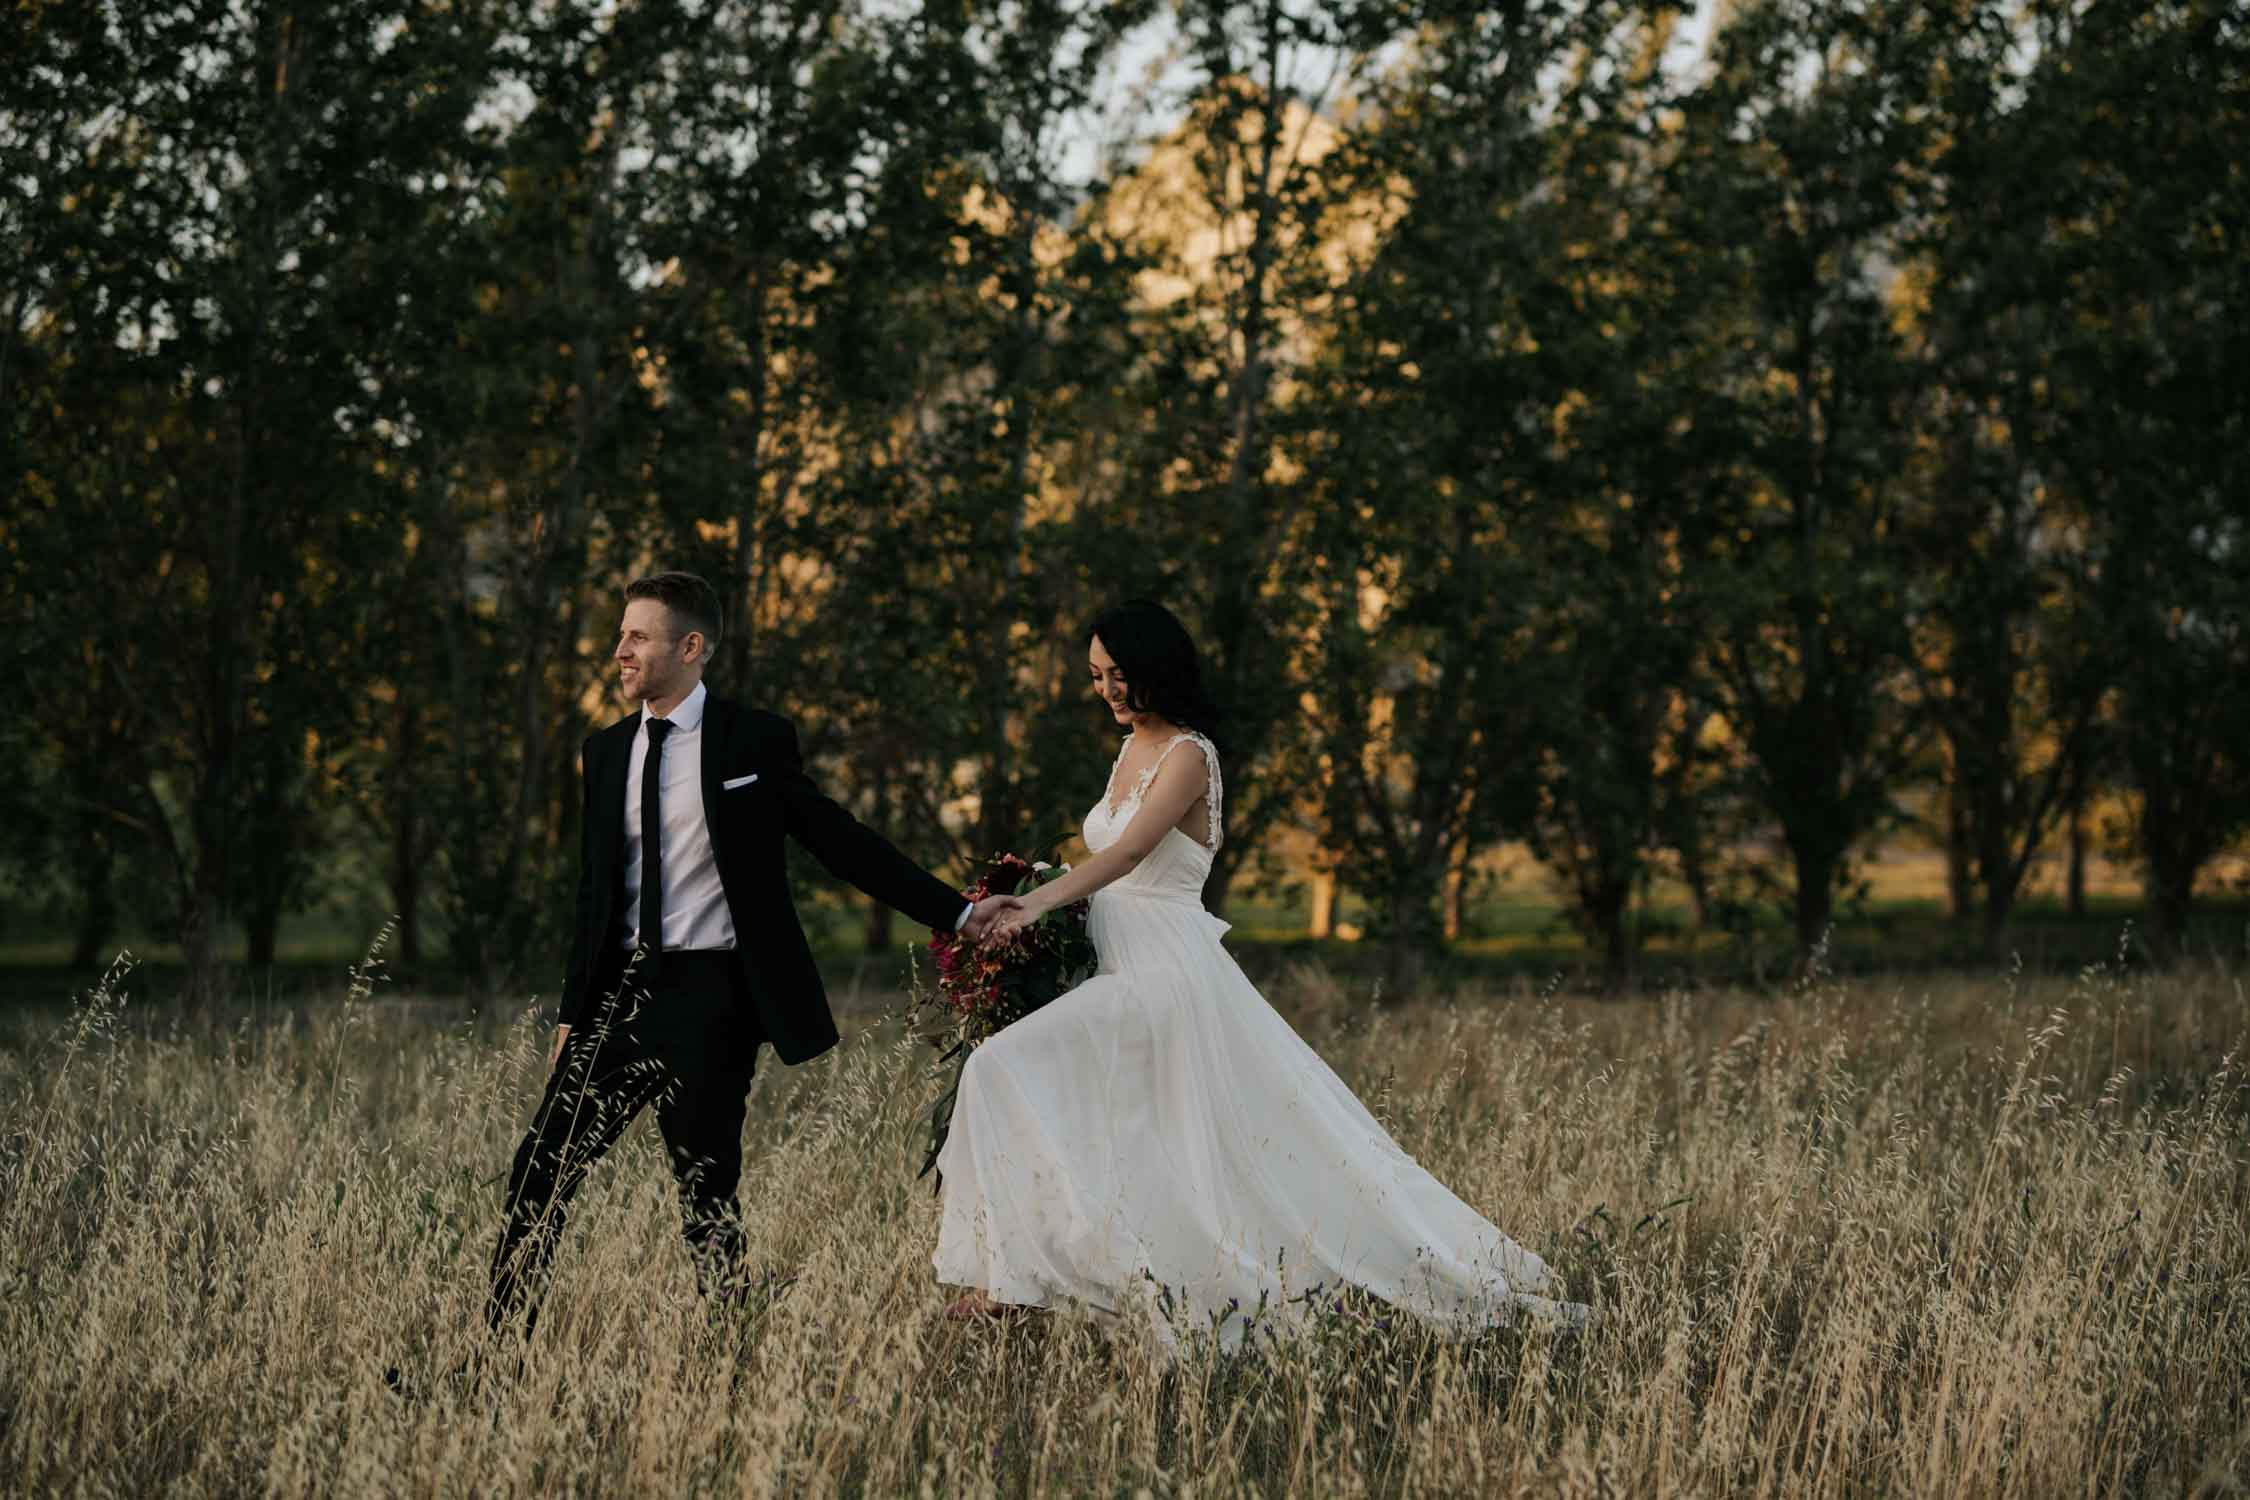 Bride and bridegroom walking in field at Belair Cape Town Wedding Venue